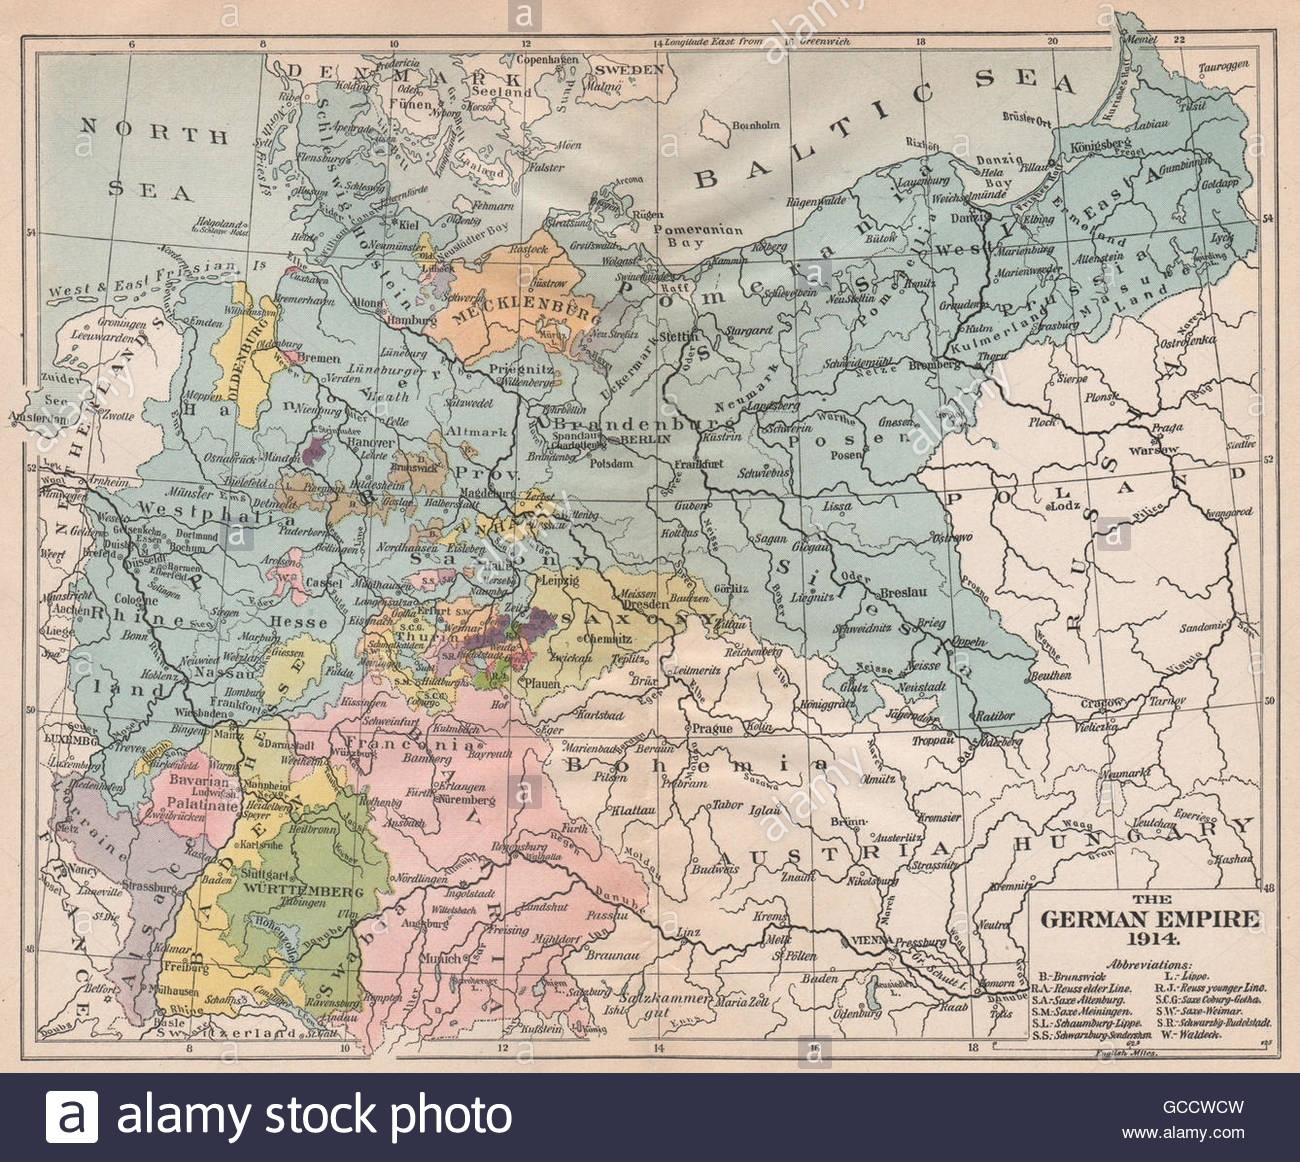 German Empire 1914. Prussia Bavaria Saxony Baden Wurttemberg, 1917 with Map German Empire 1914